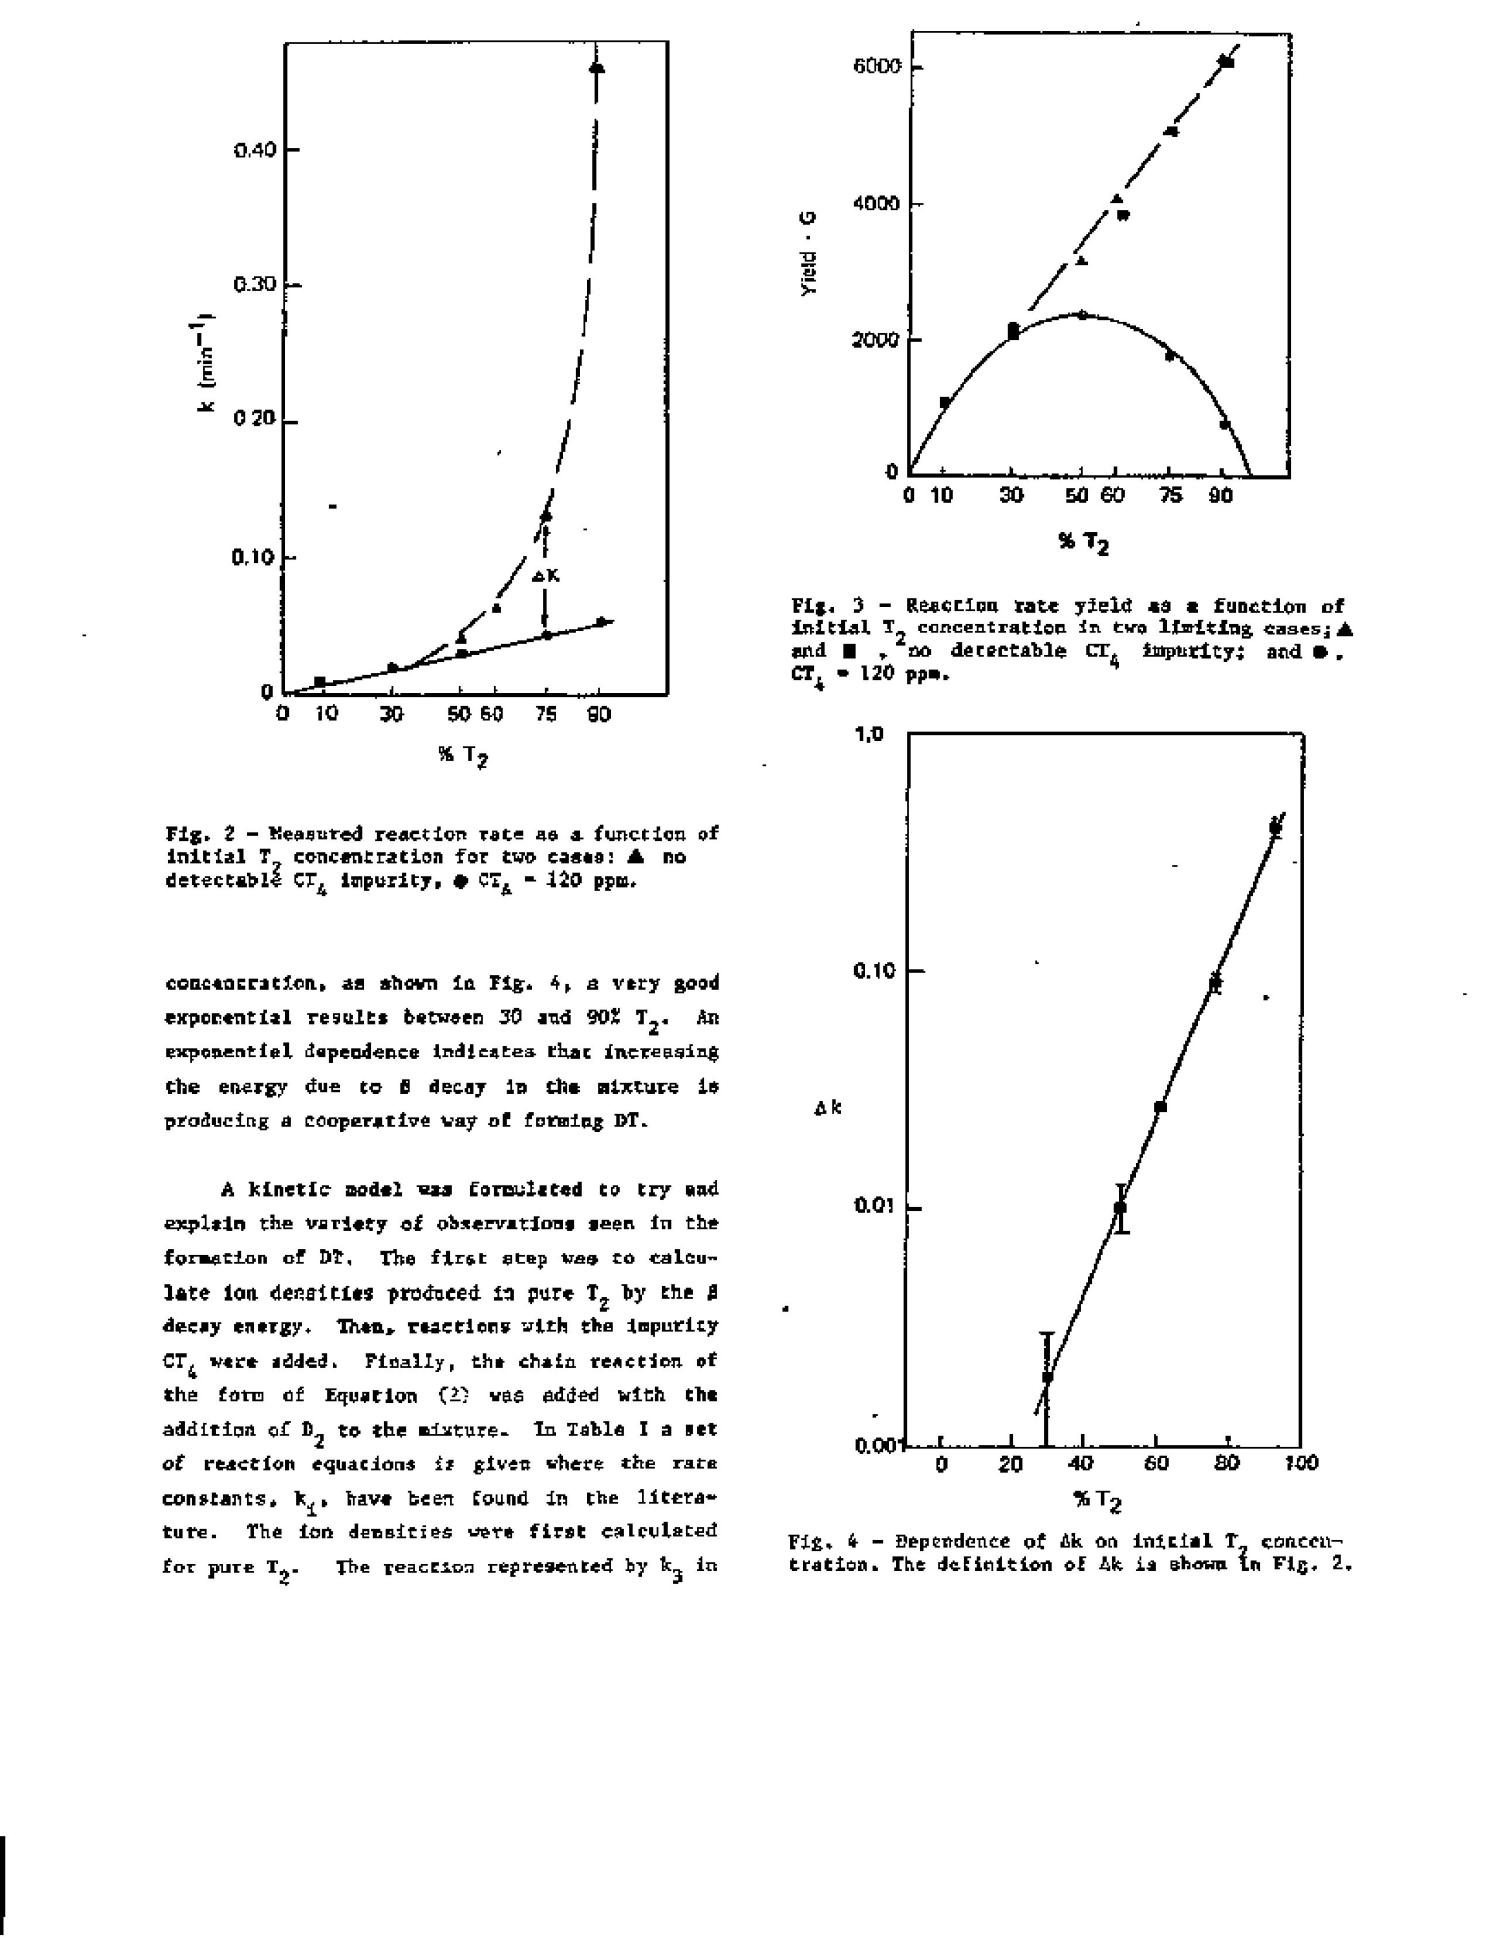 Reaction Rates For The Formation Of Deuterium Tritide From